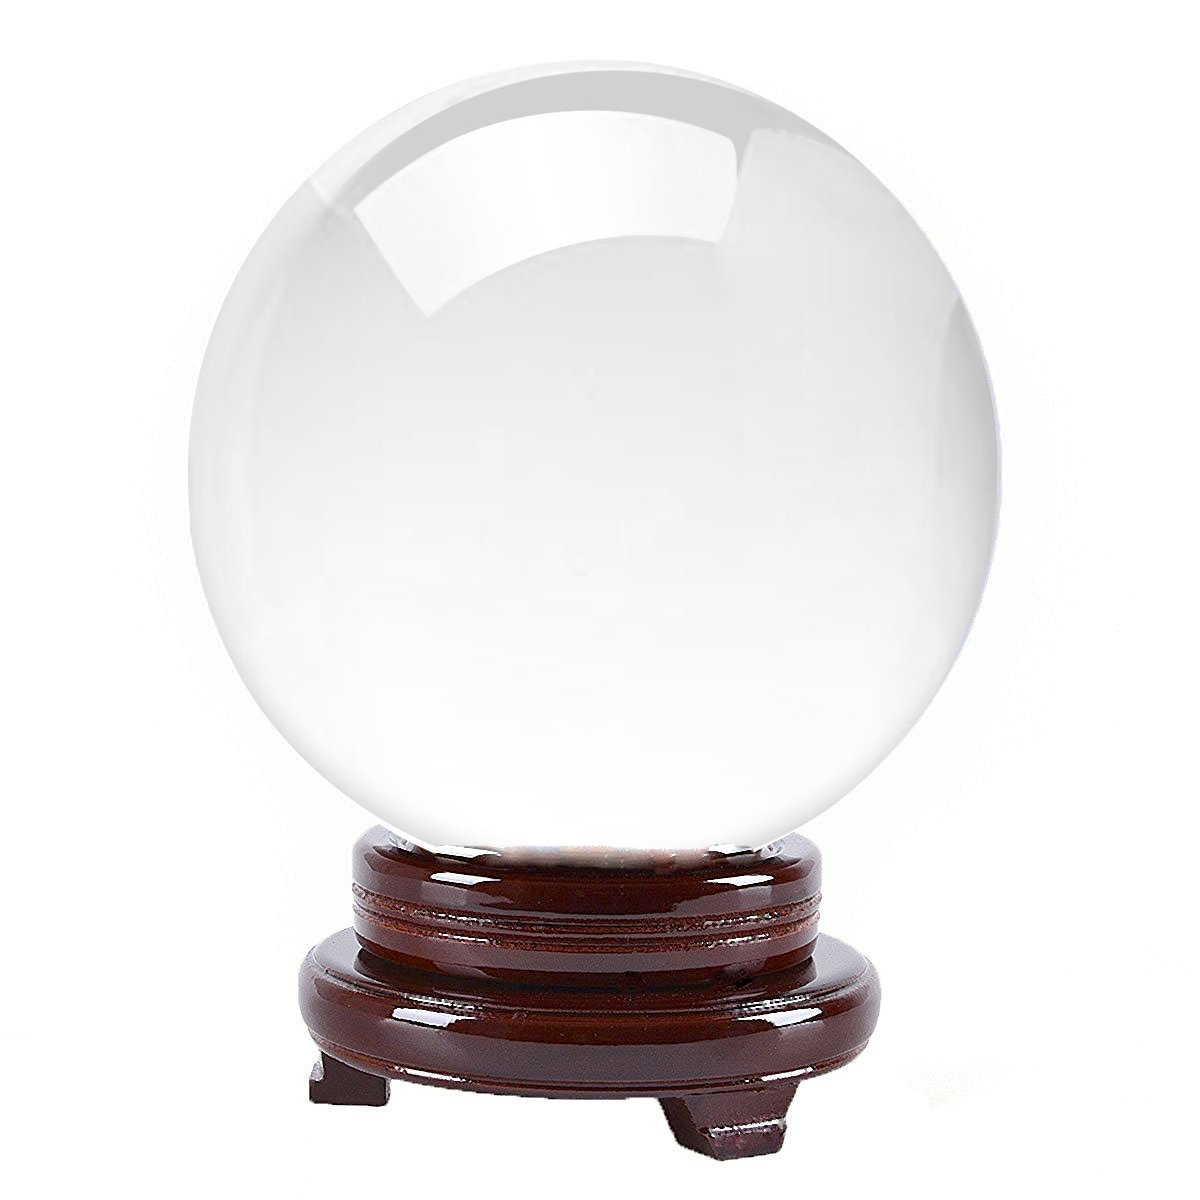 Amlong Crystal Crystal Ball 130mm (5 inch) Including Wooden Stand and Gift Package by Amlong Crystal